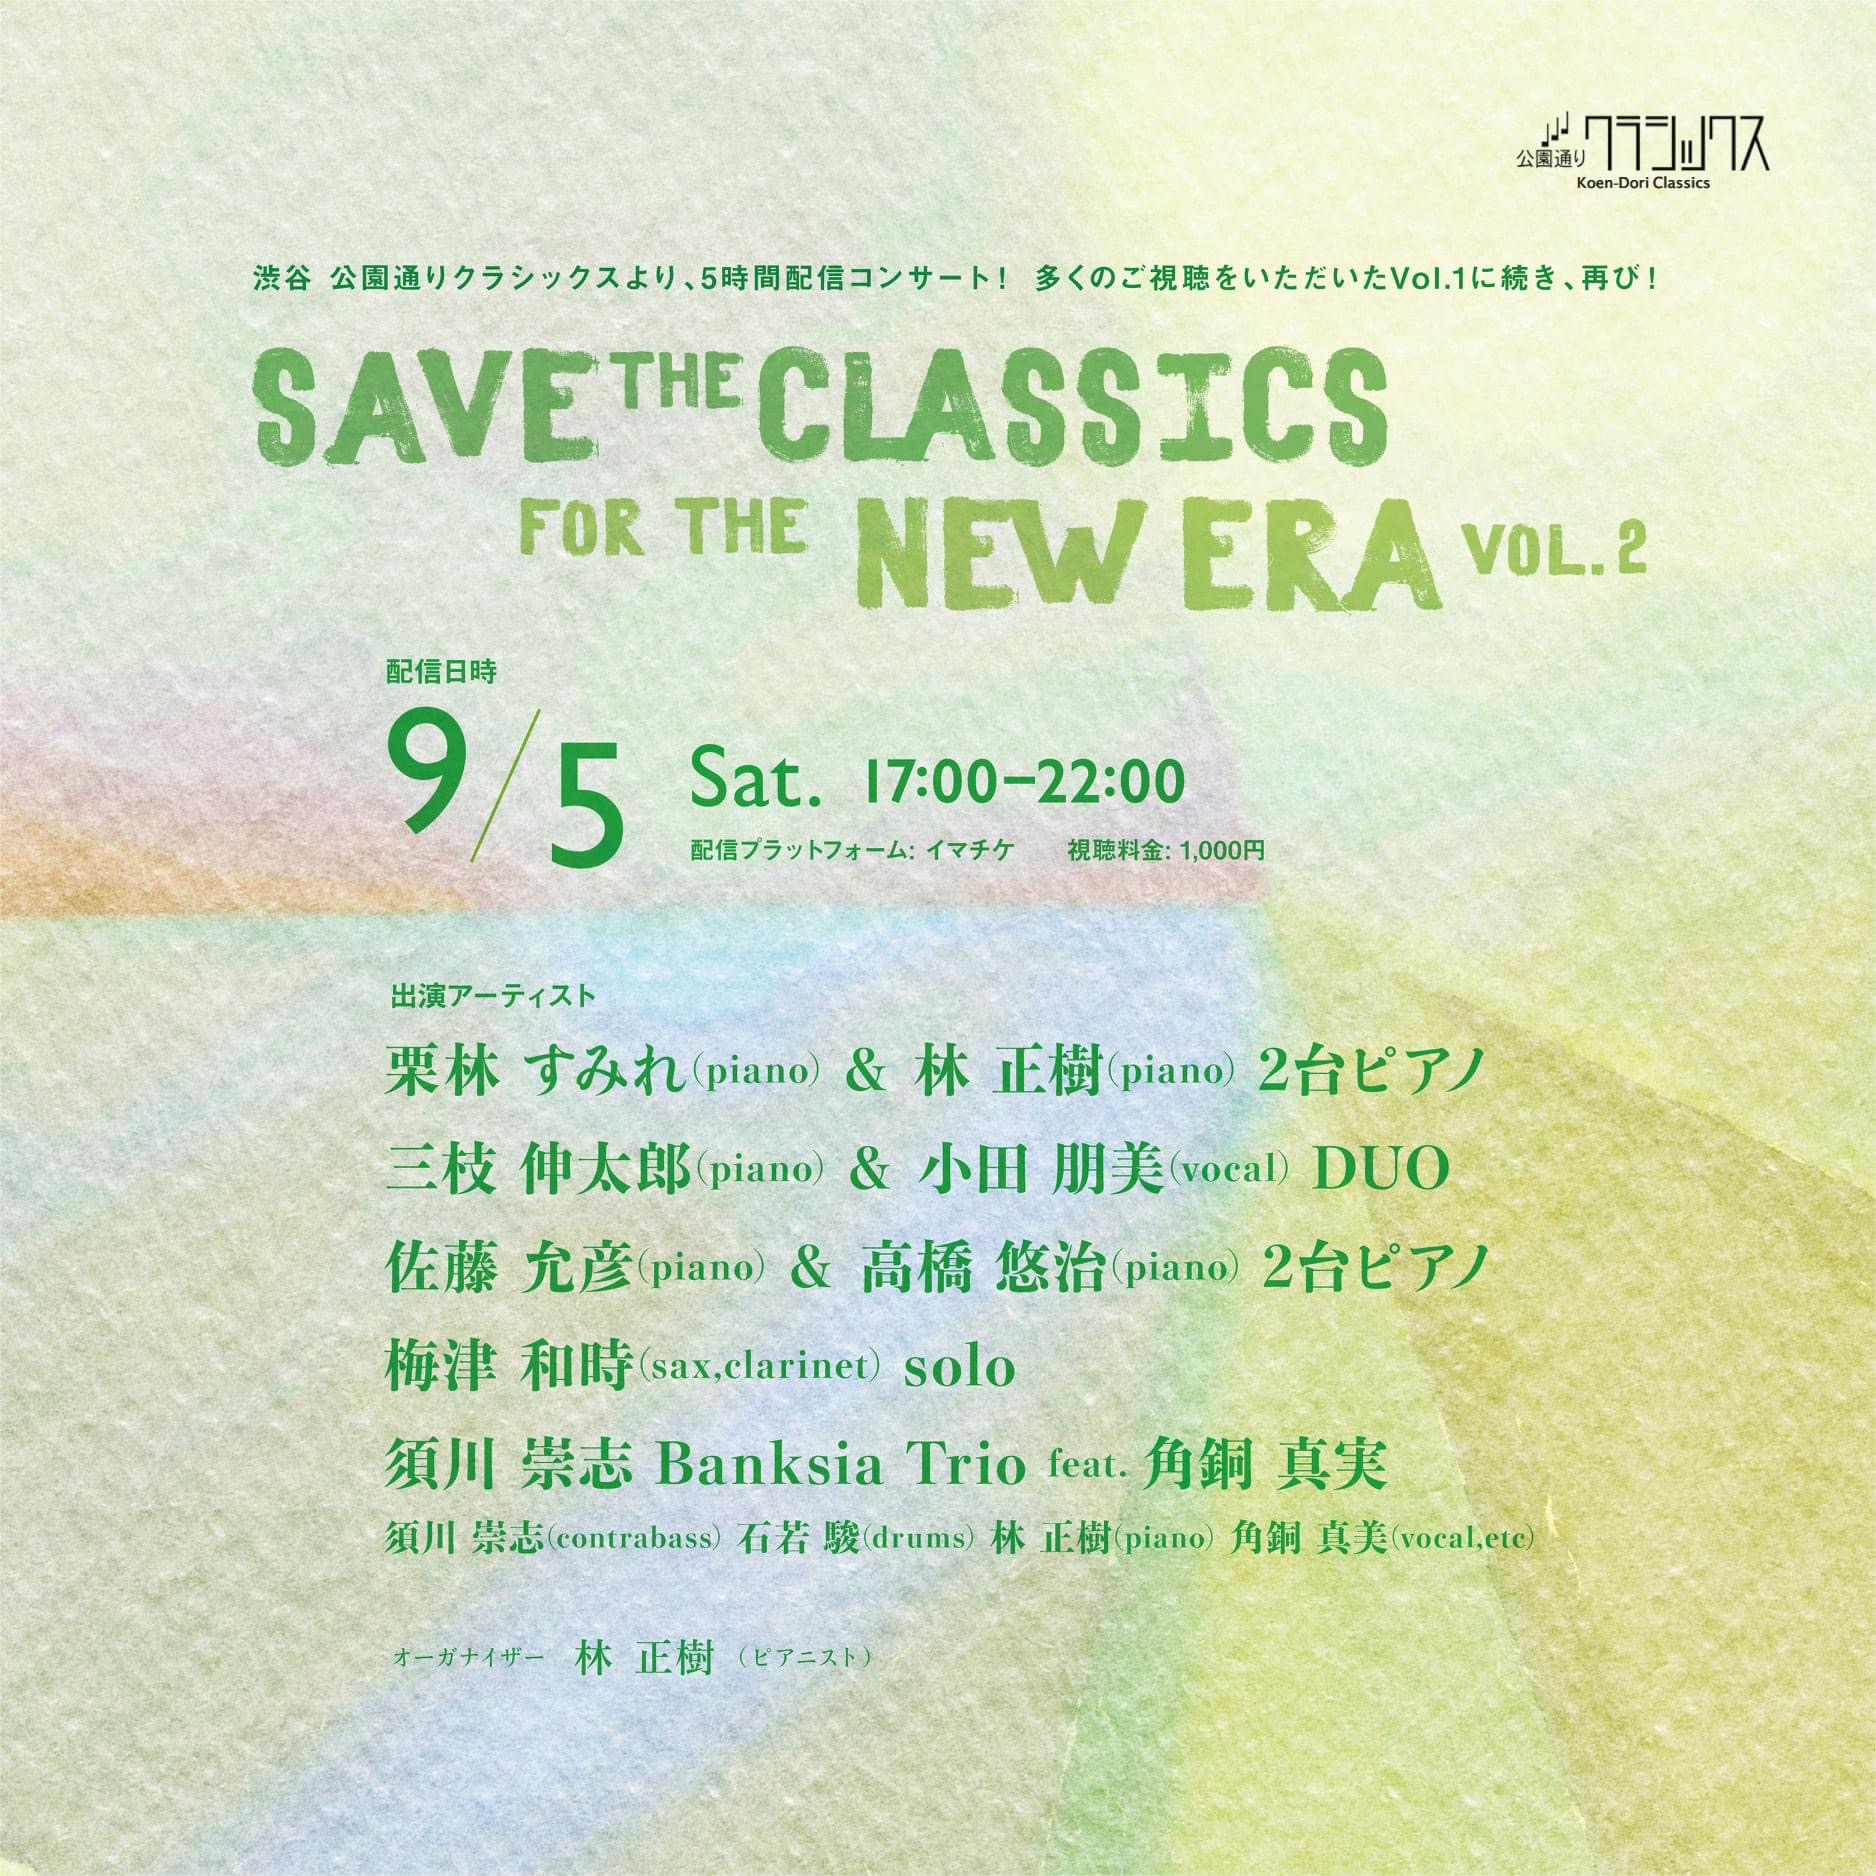 SAVE THE CLASSICS FOR THE NEW ERA Vol. 2